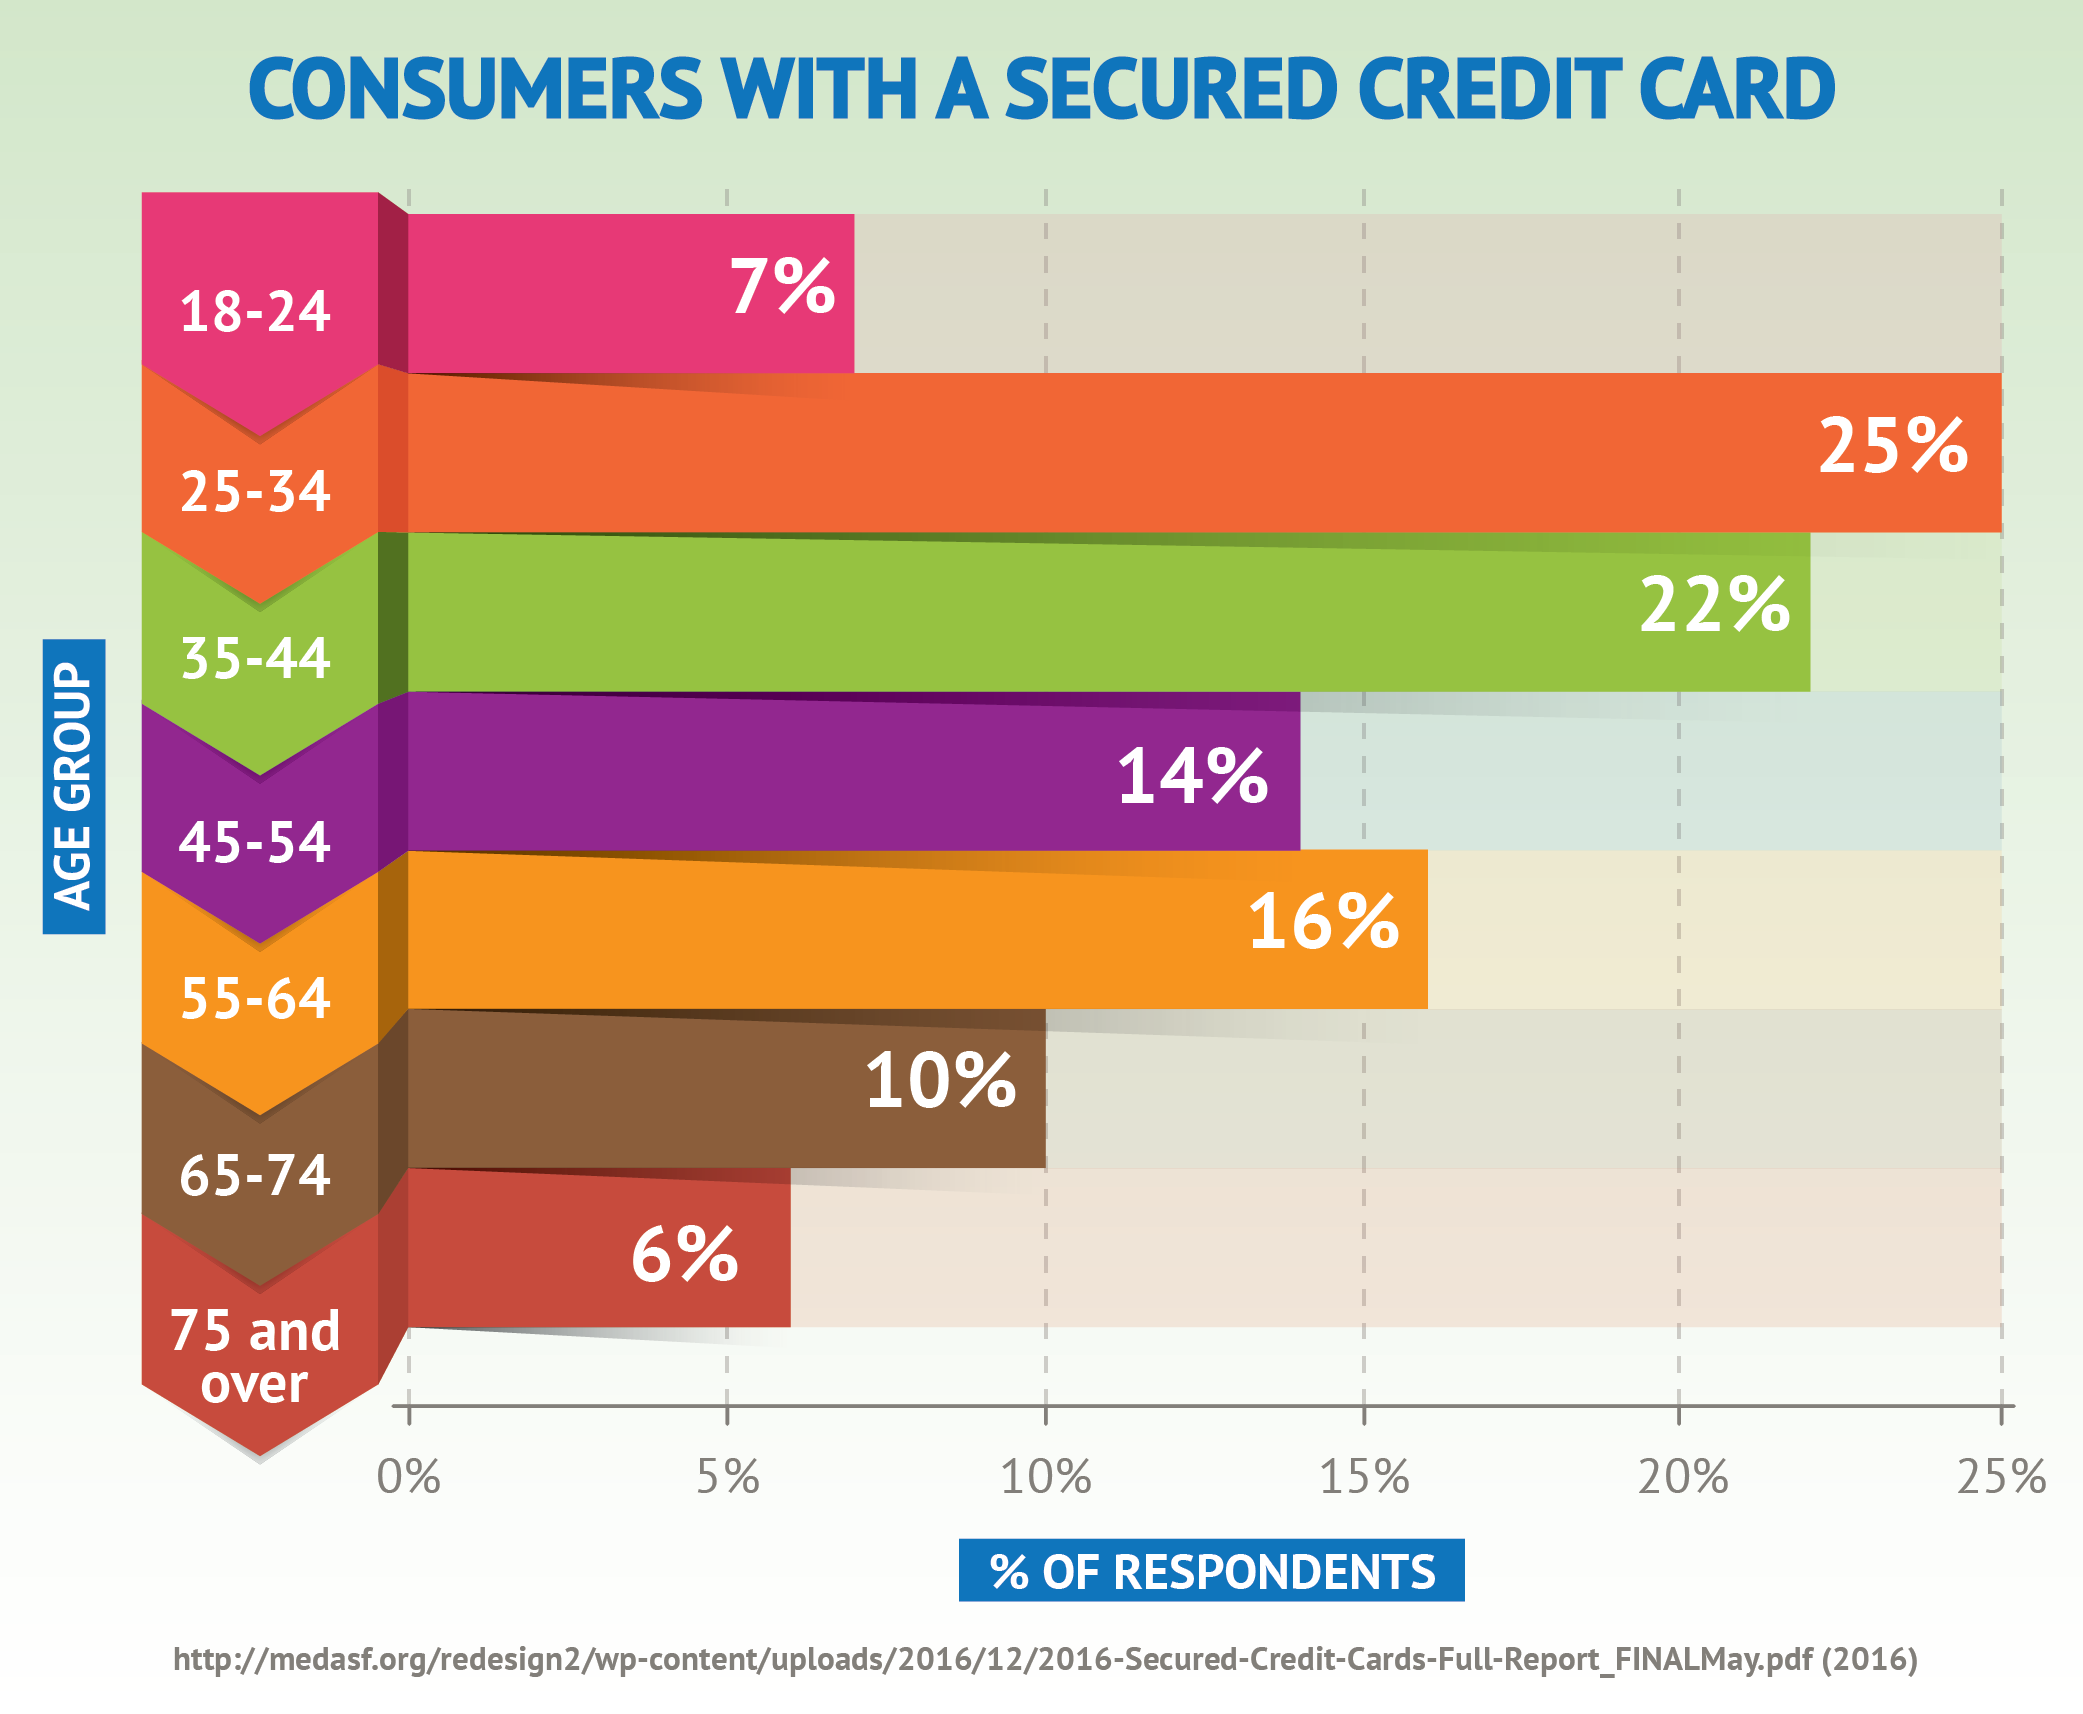 Consumers With A Secured Credit Card